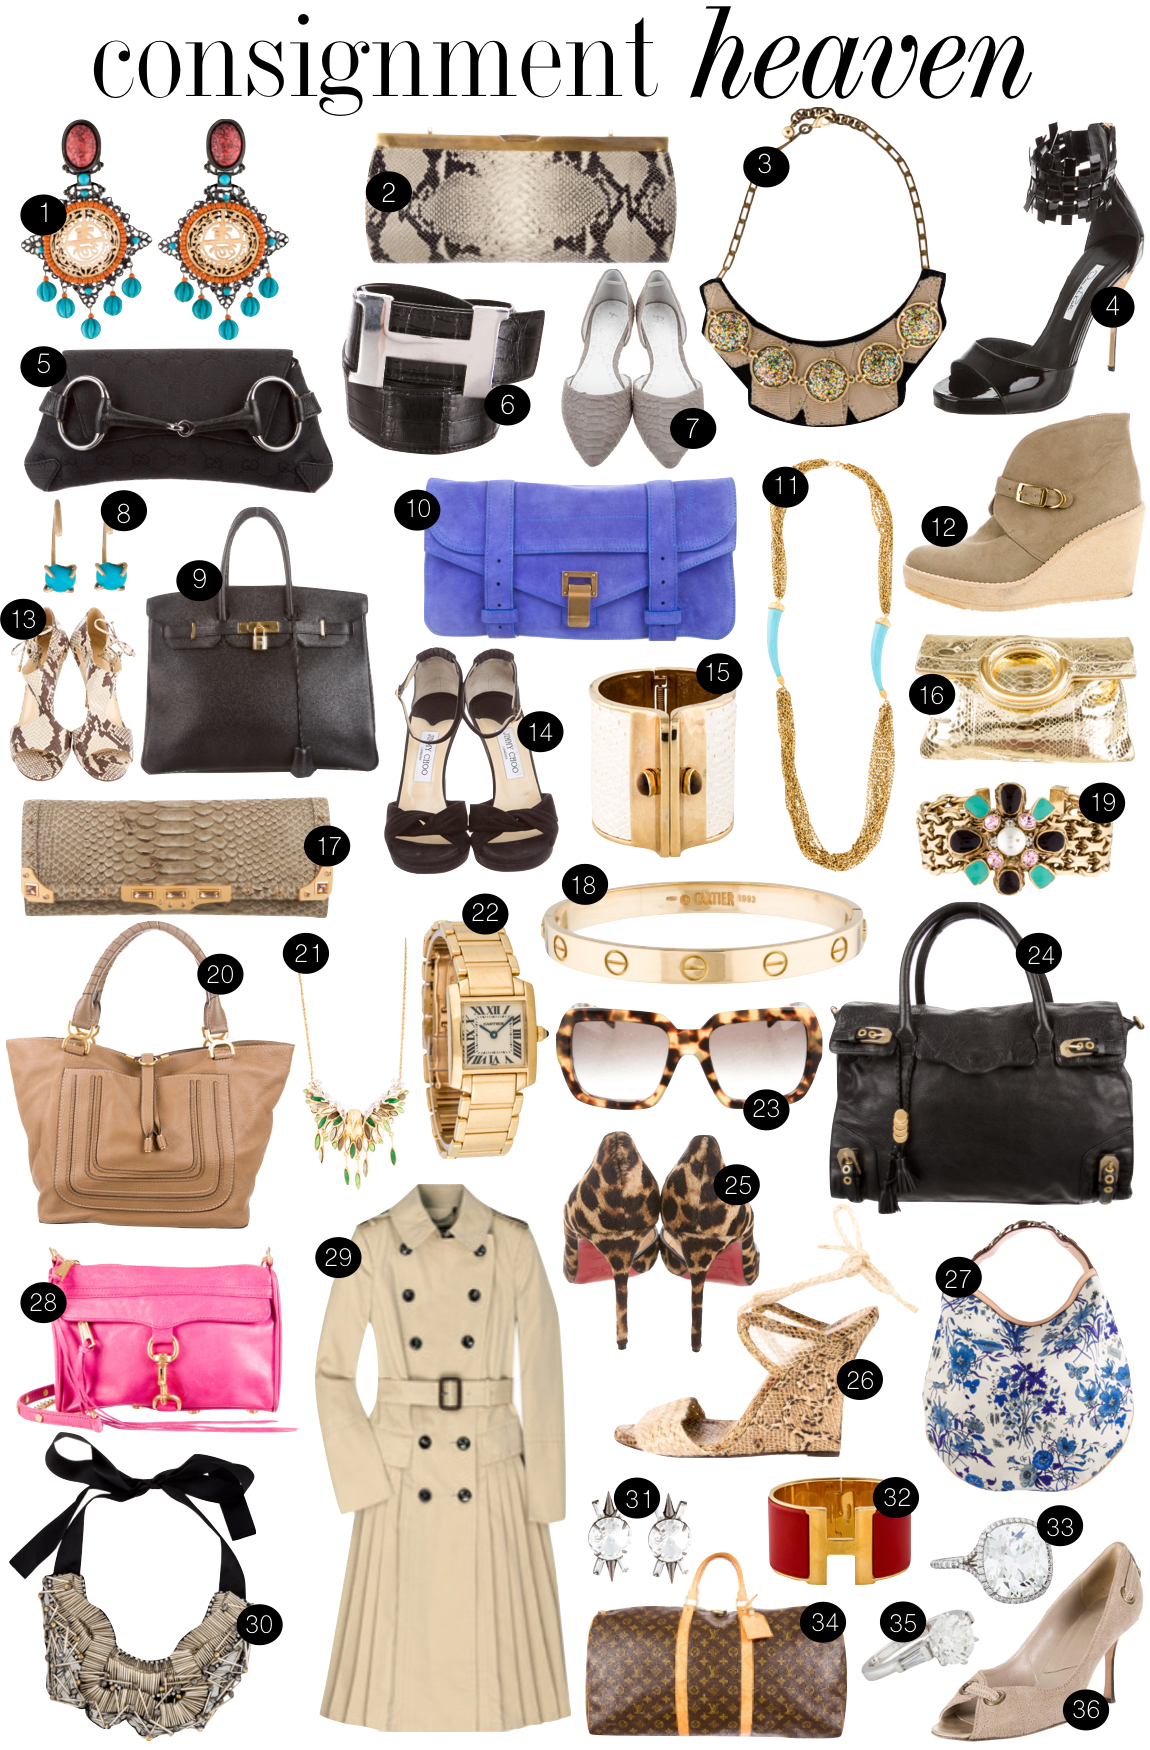 Consignment Heaven | Kiki's List